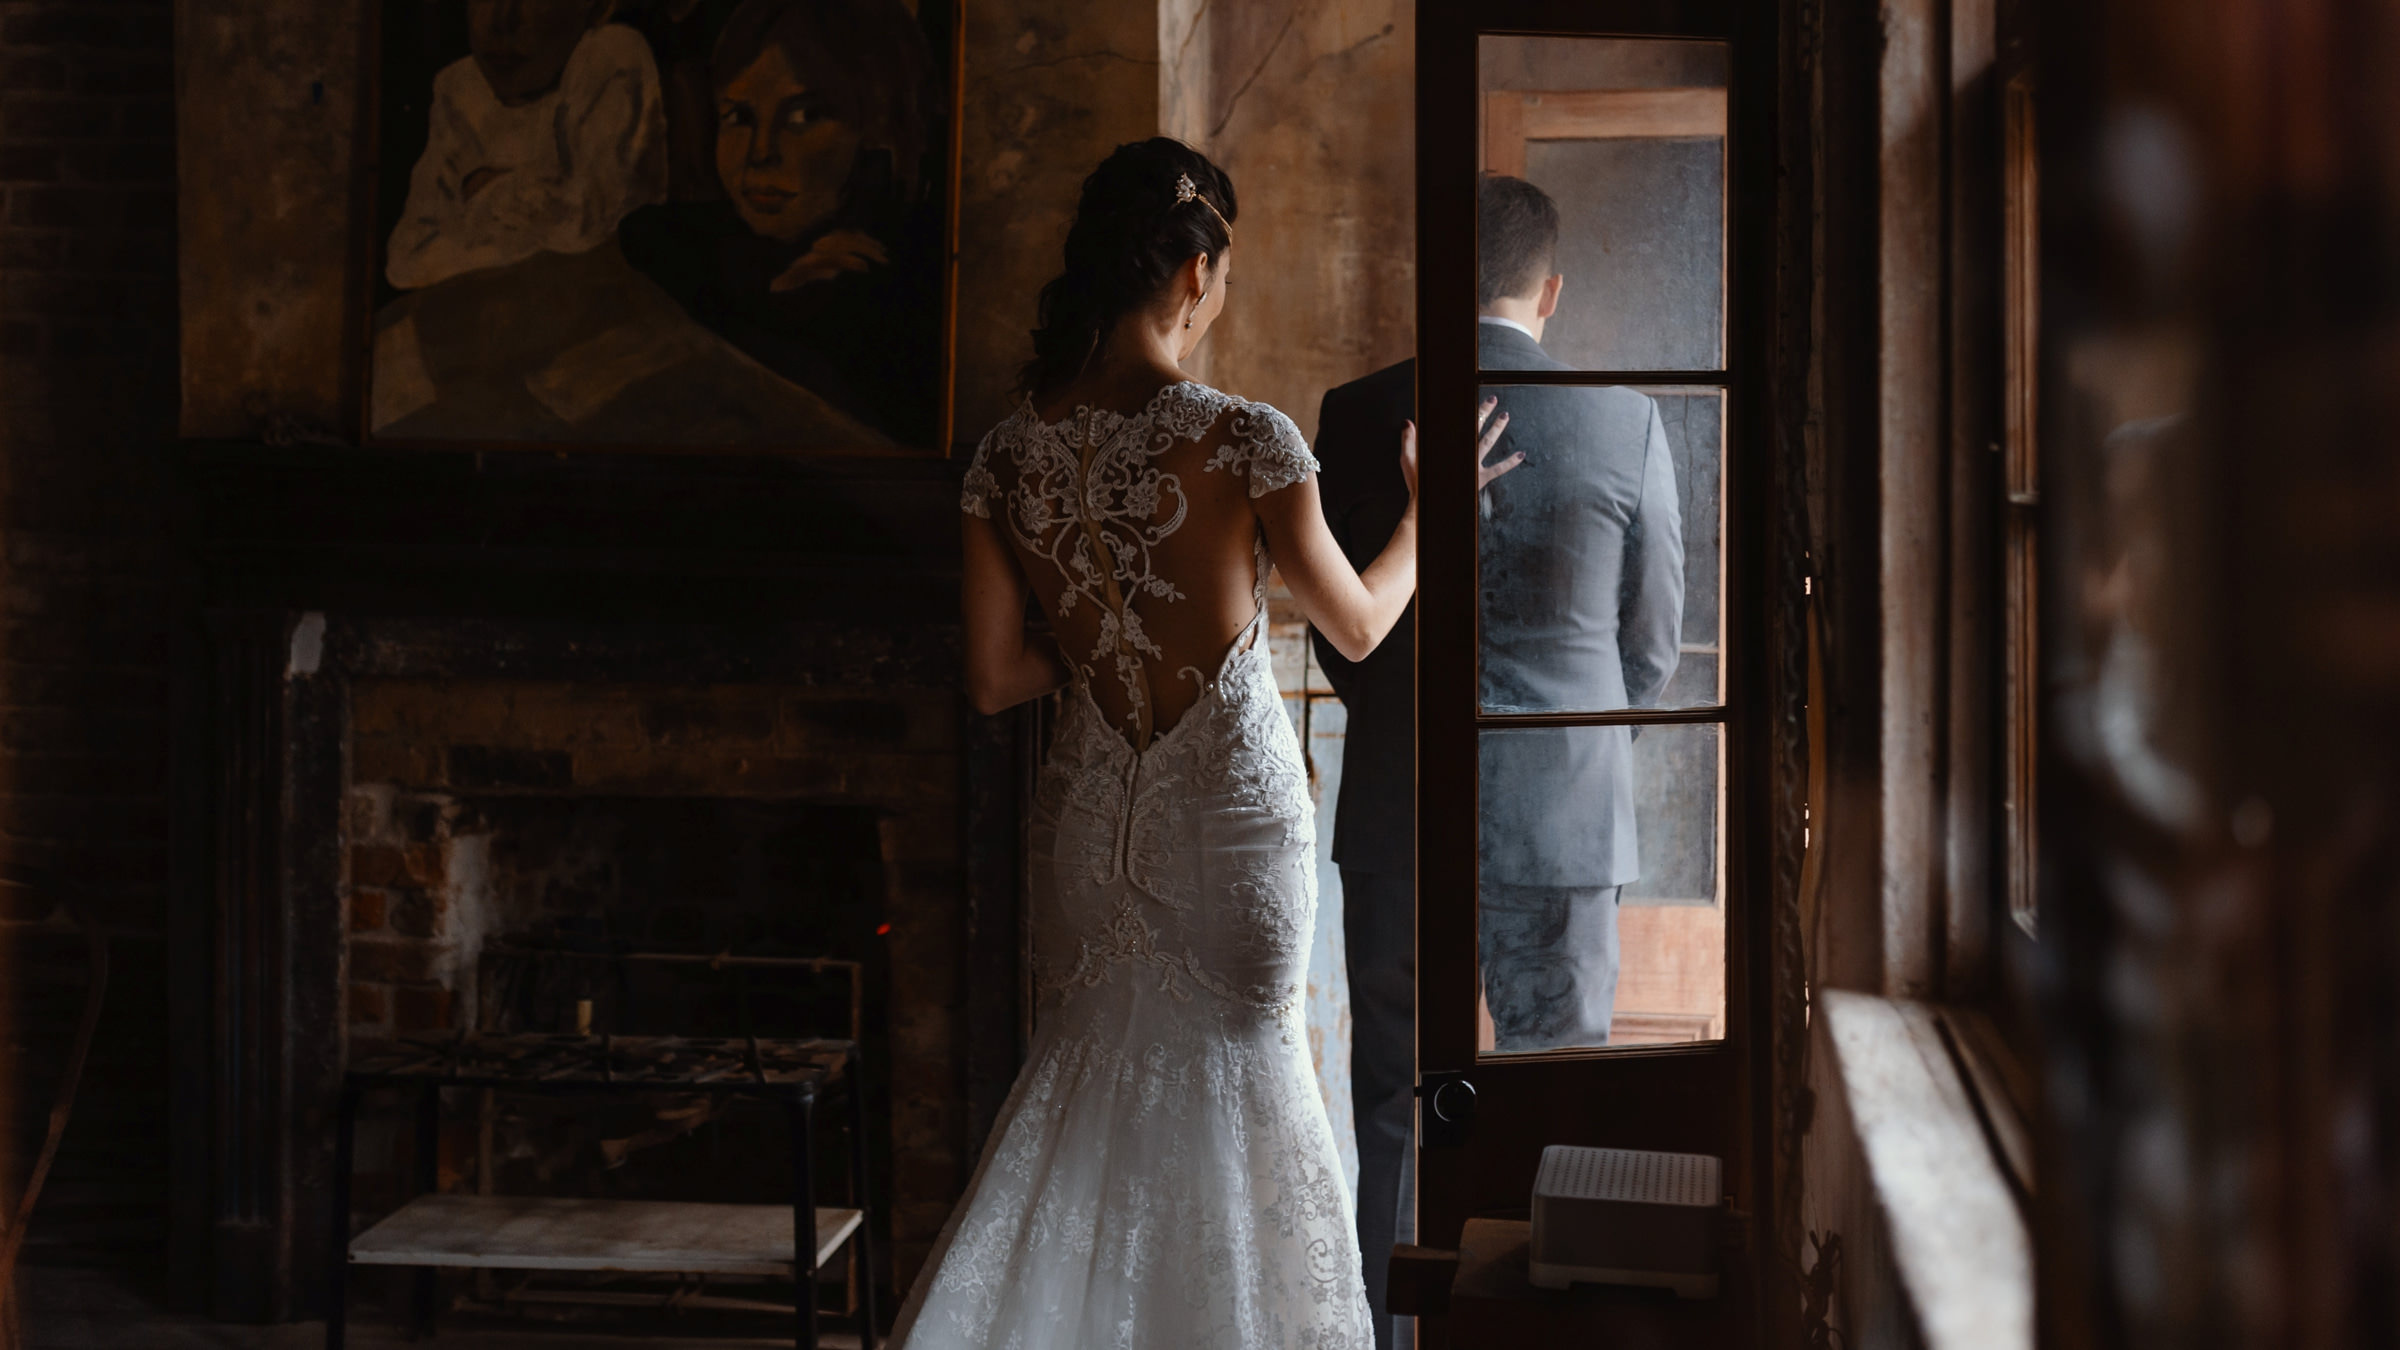 bride-walking-up-to-groom-for-first-look-new-orleans-austin-houston-wedding-photographer-photo-by-dark-roux